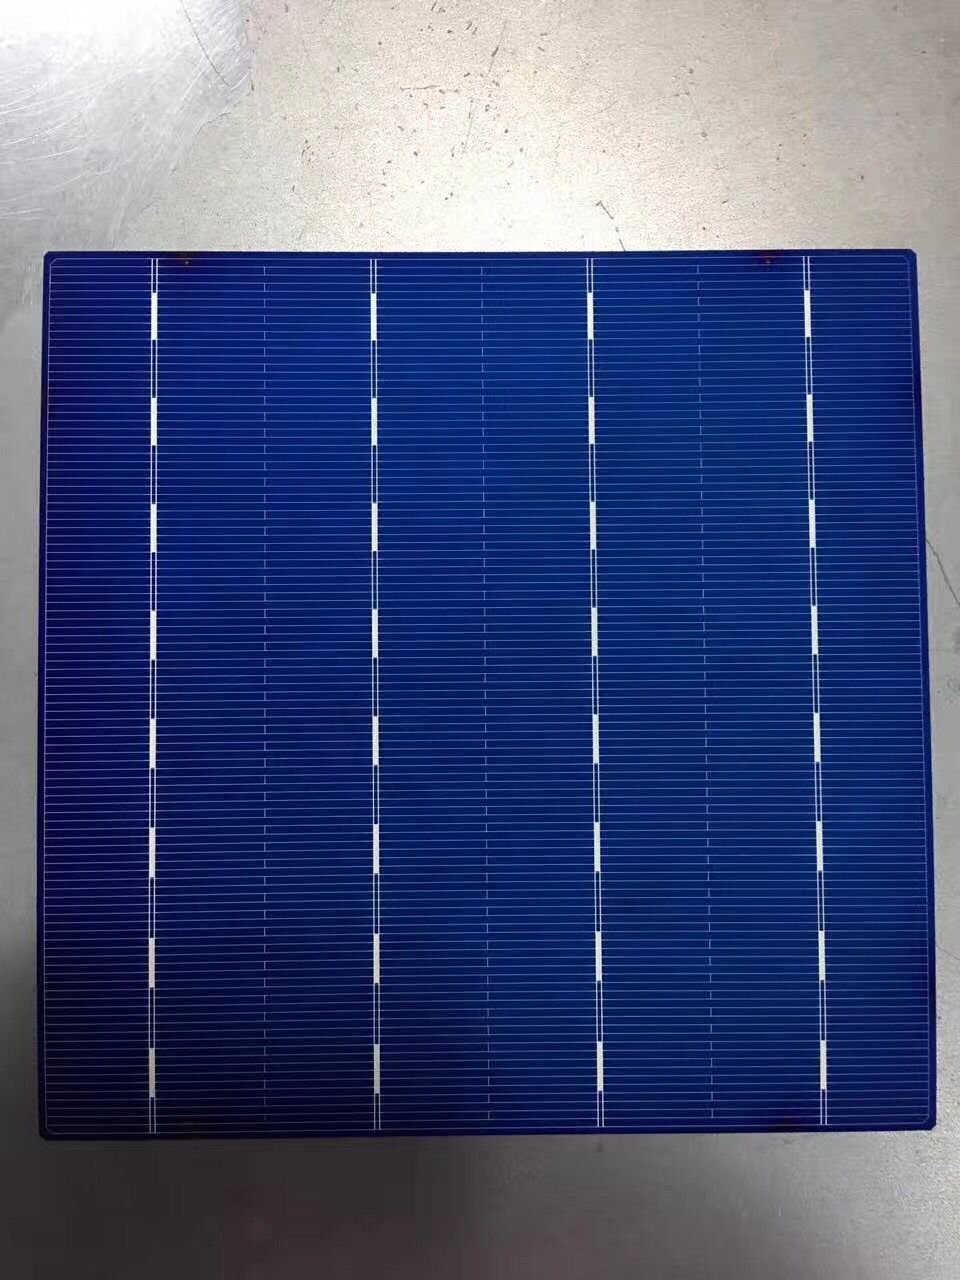 40Pcs 4.5W 156MM Efficiency Photovoltaic Polycrystalline Silicon Solar Cell 6x6 Prices Cheap Grade A For DIY PV Poly Solar Panel